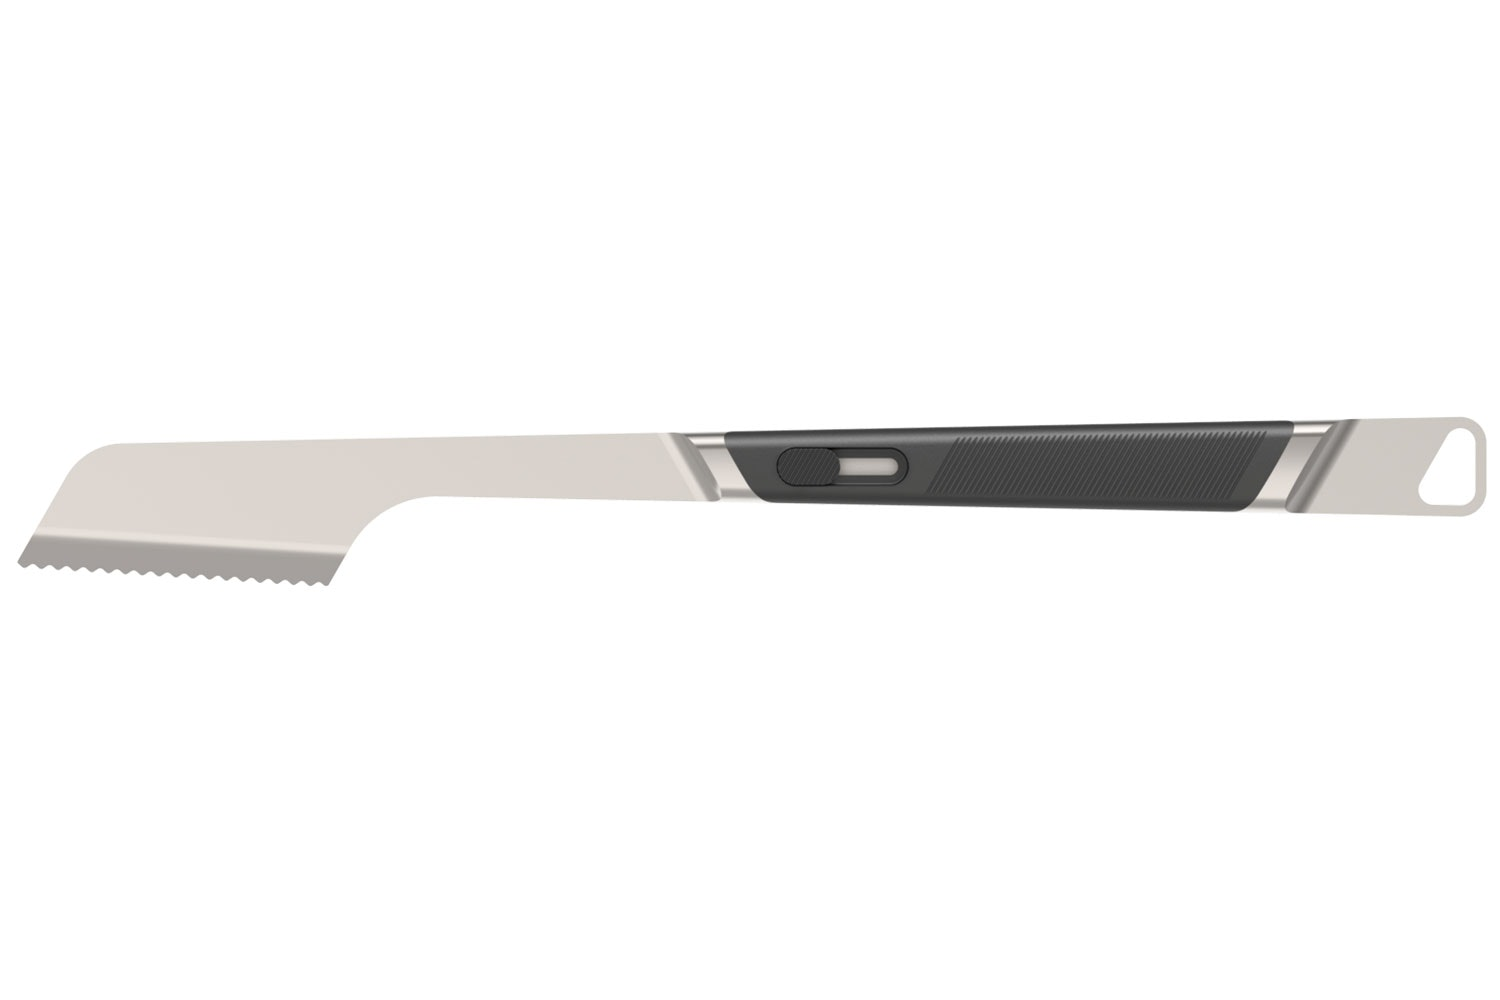 Everdure Premium Large Tongs by Heston Blumenthal